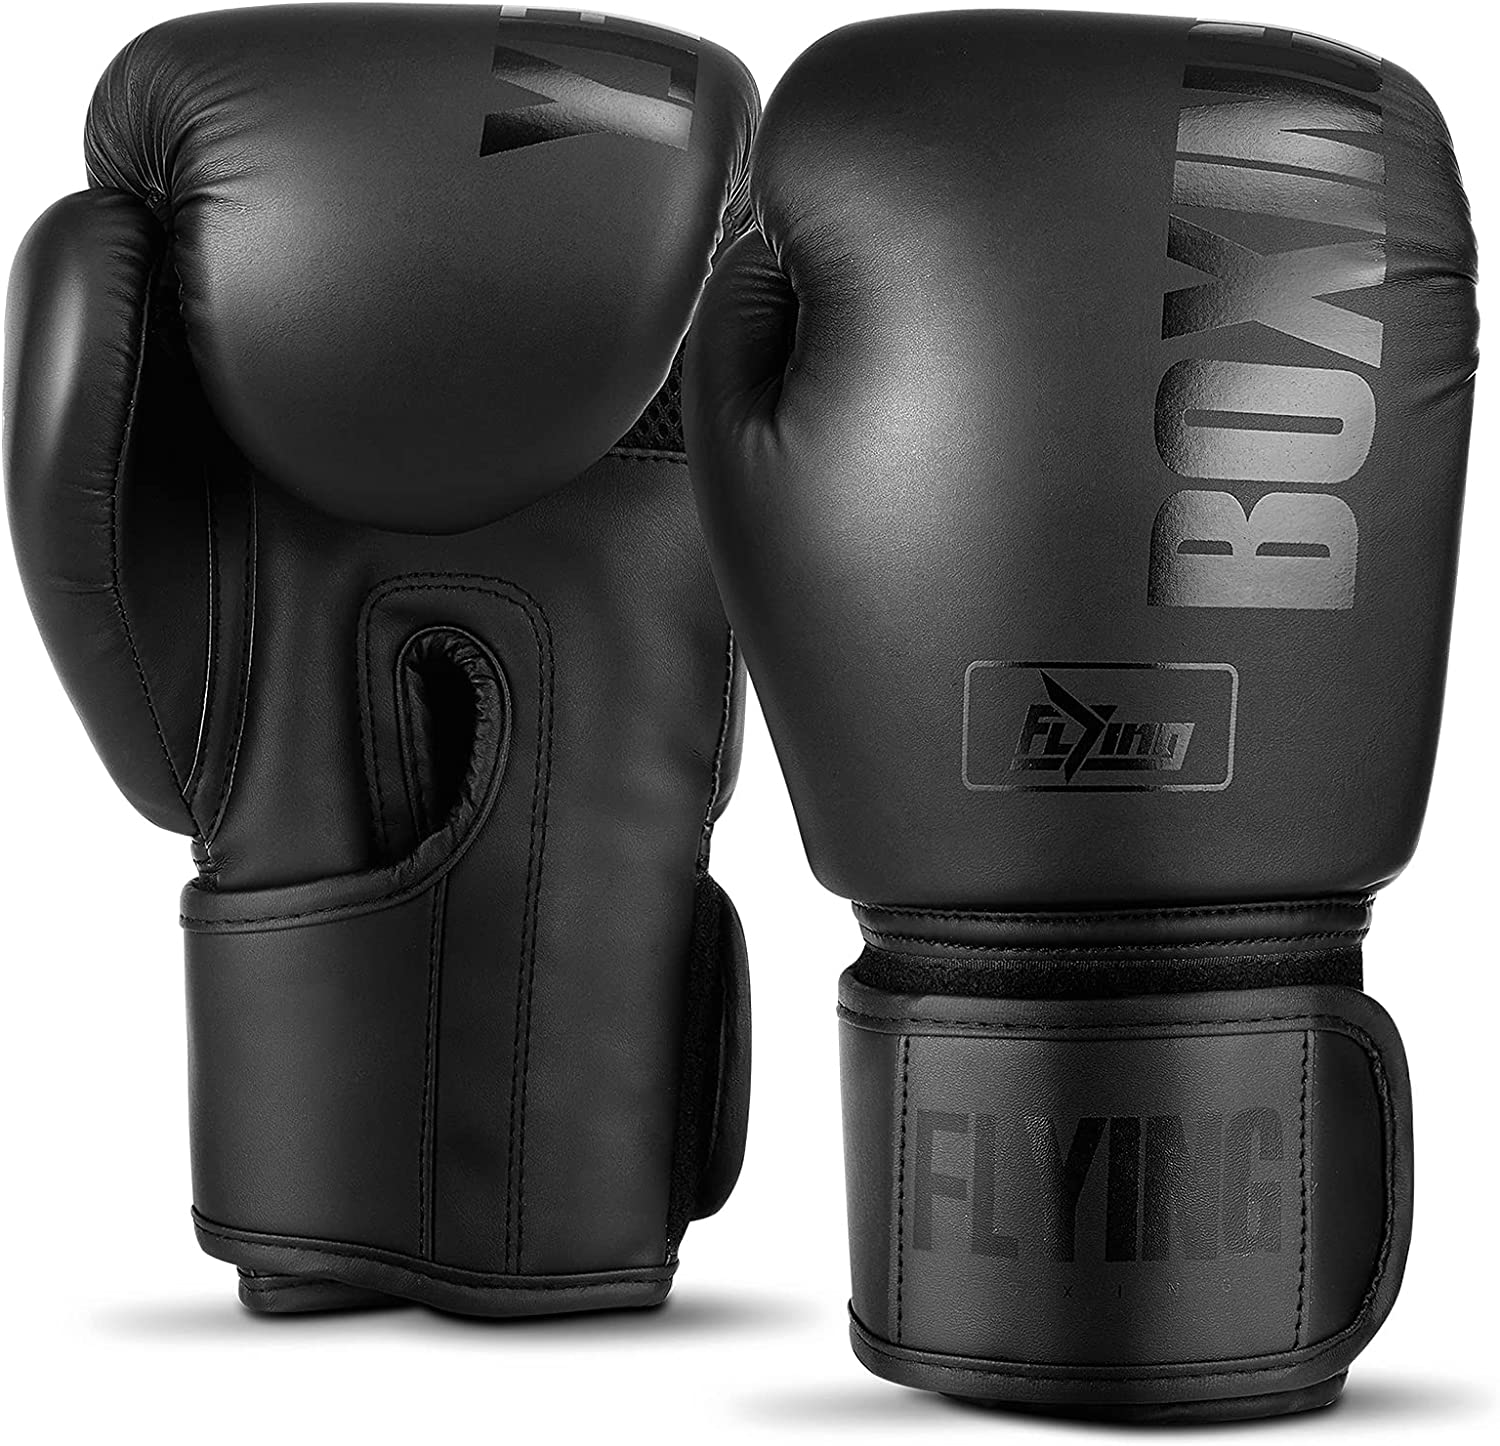 Boxing Gloves for Men Special Campaign Ranking TOP5 and M Women Kickboxing Suitable